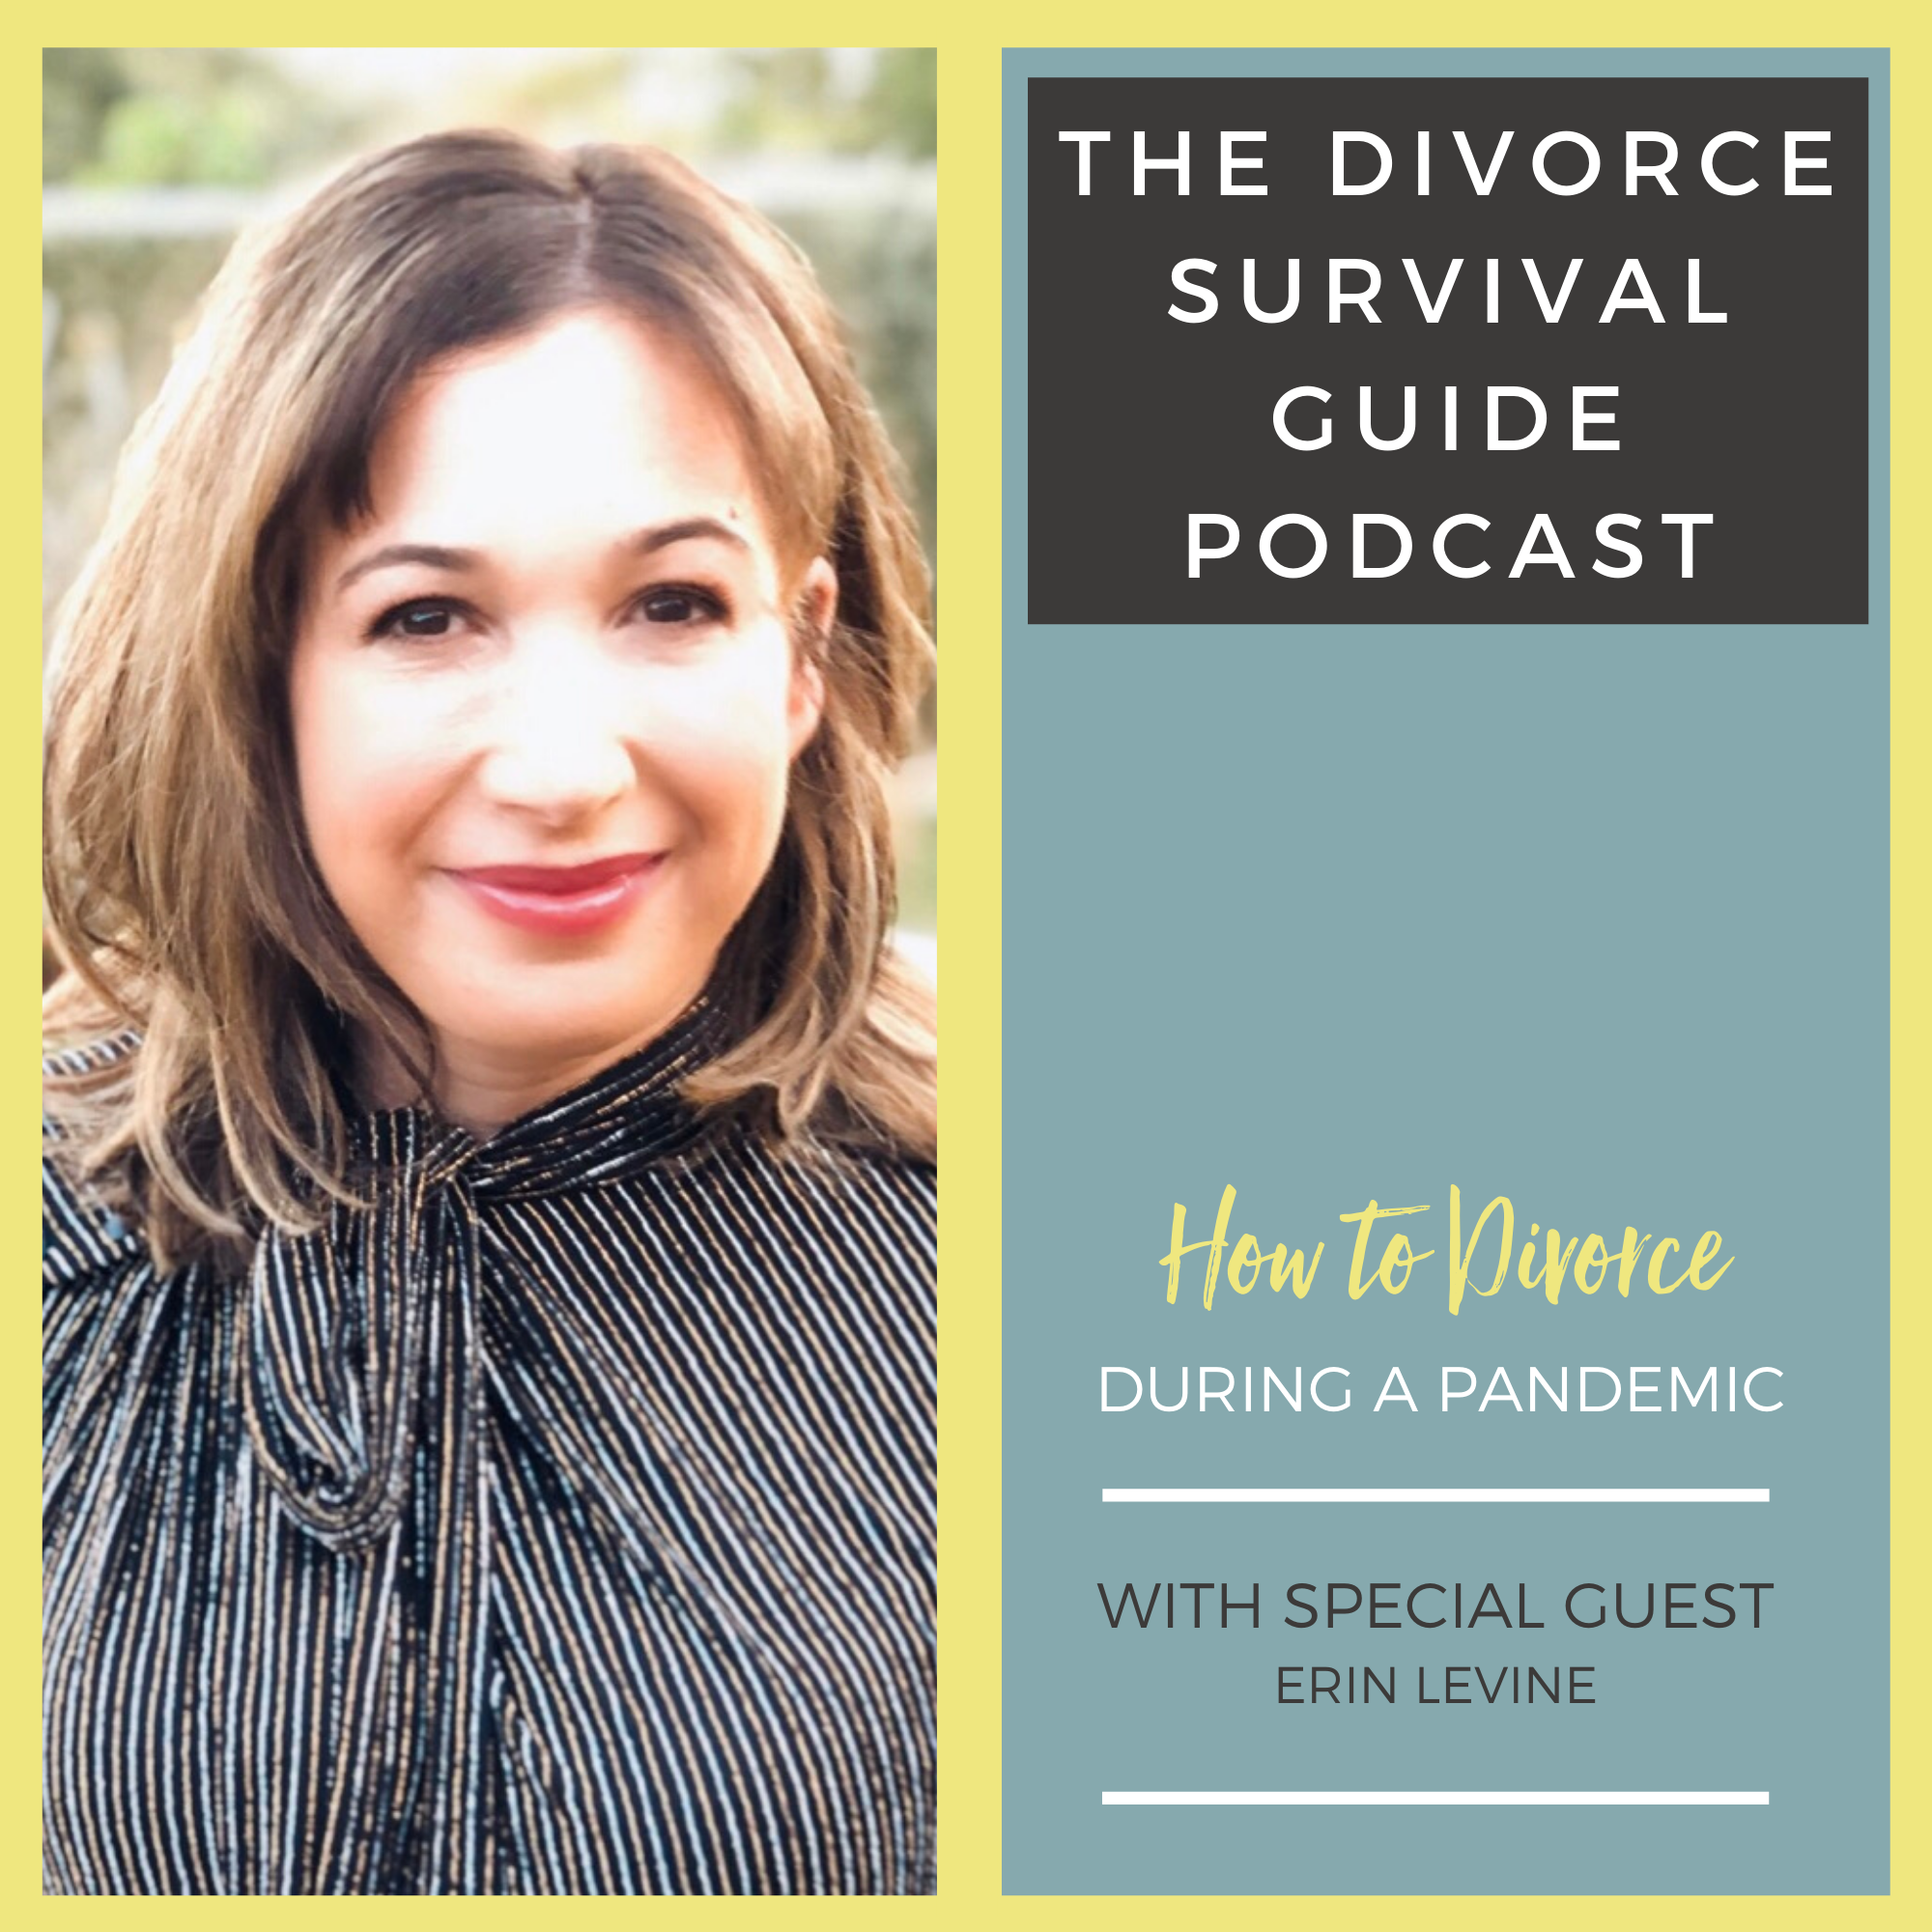 The Divorce Survival Guide Podcast - How to Divorce During a Pandemic with Erin Levine